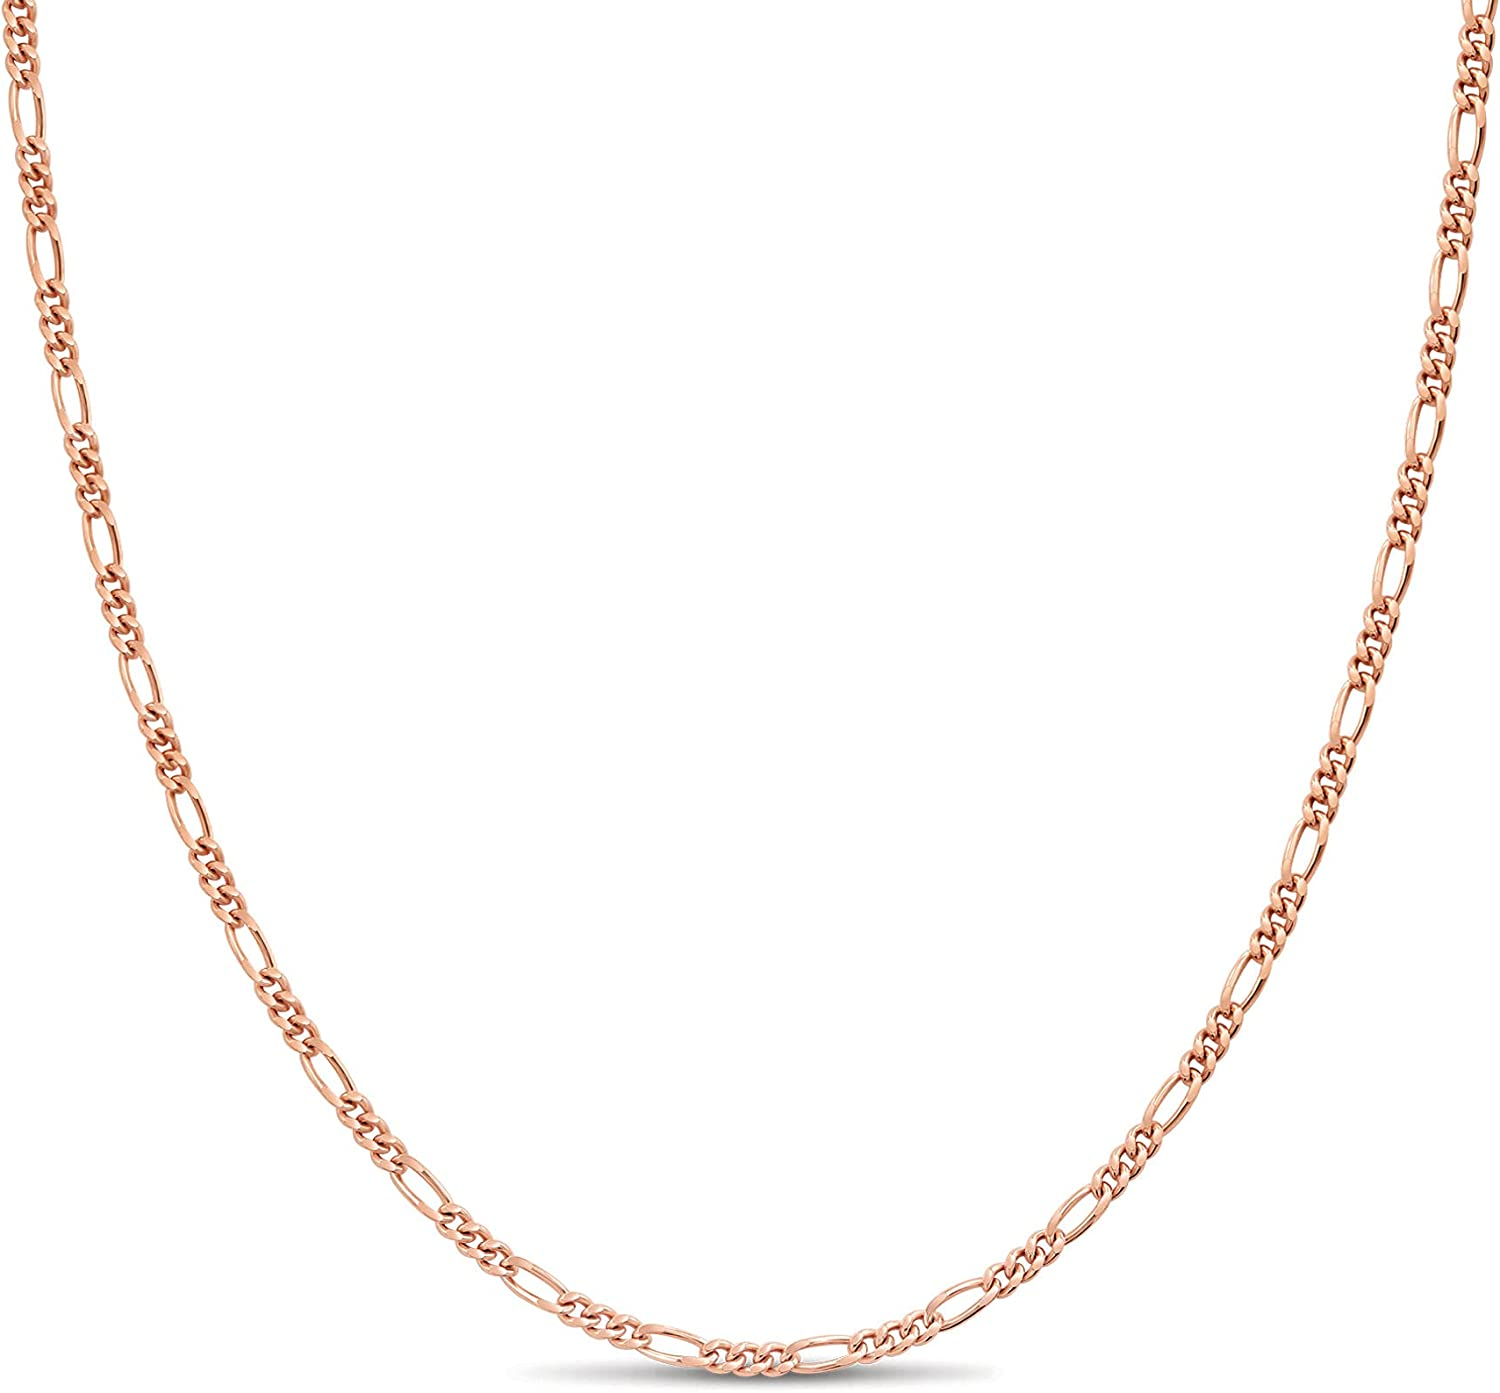 Rose Gold Plated Sterling Silver Figaro Chain Link Necklace Ital